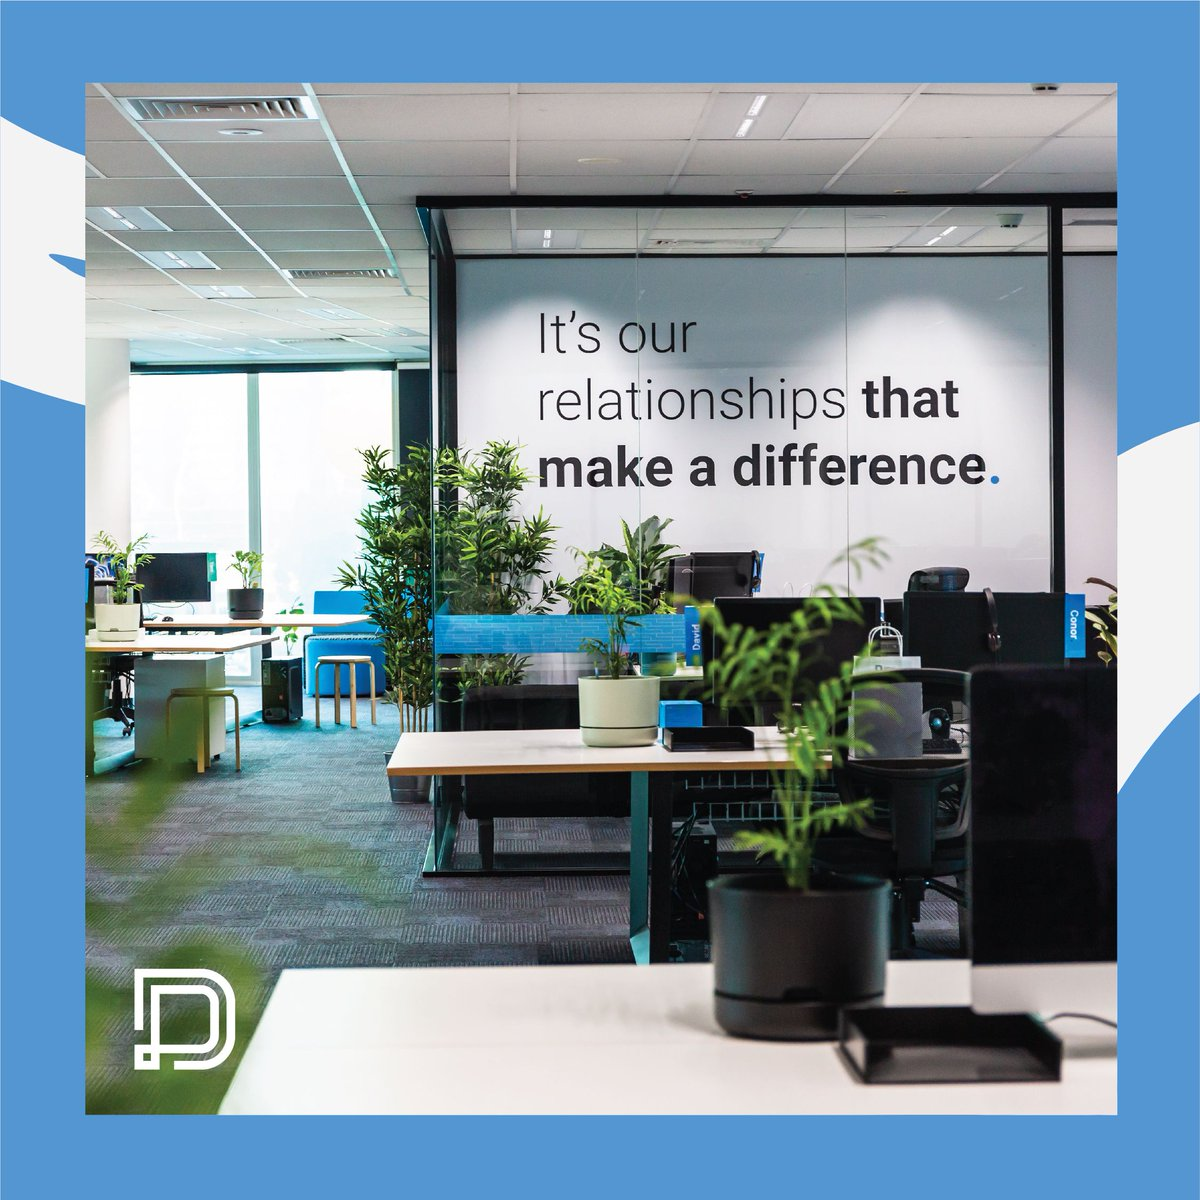 At Disrupt Digital, we keep both our people and our clients engaged by making a positive difference to small and medium businesses. How? By developing strong relationships! We pride ourselves on this ... as you may have noticed 😏  #disruptdigital #digitalmarketingagency